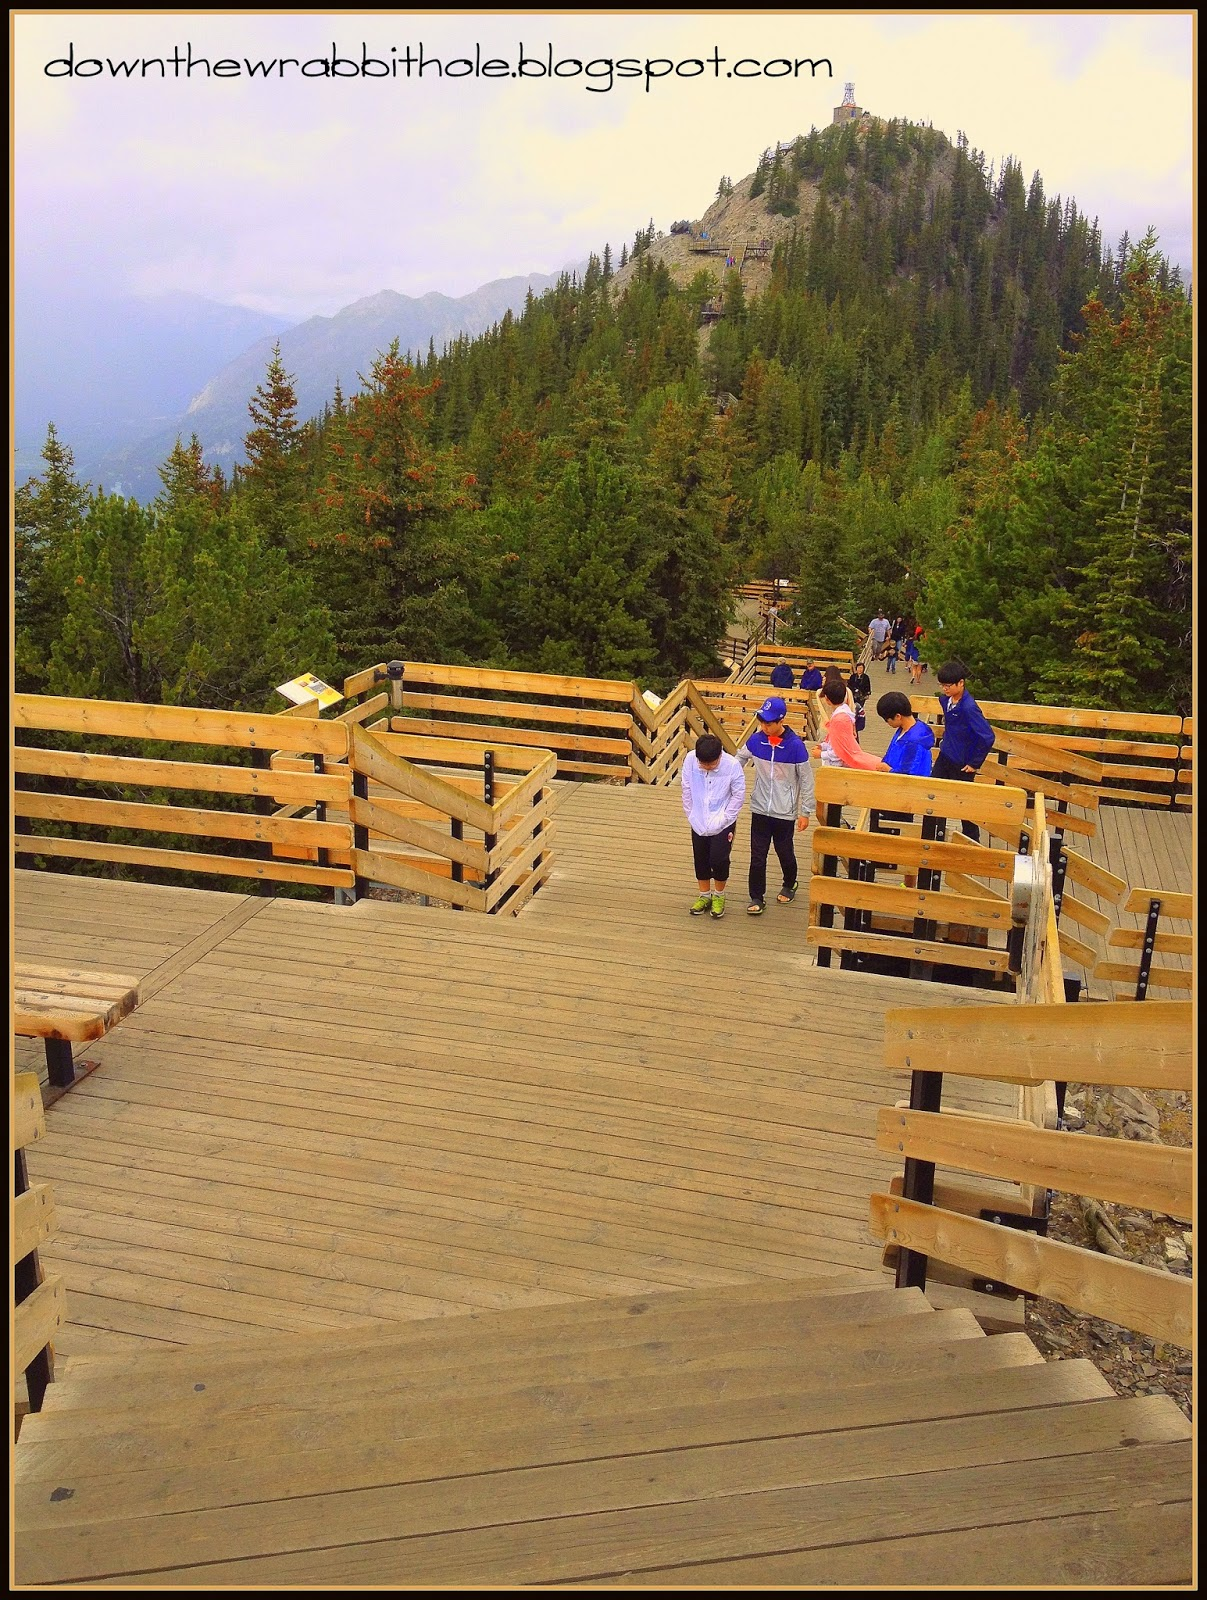 Sanson Peak hike, Banff Gondoloa, things to do in Alberta